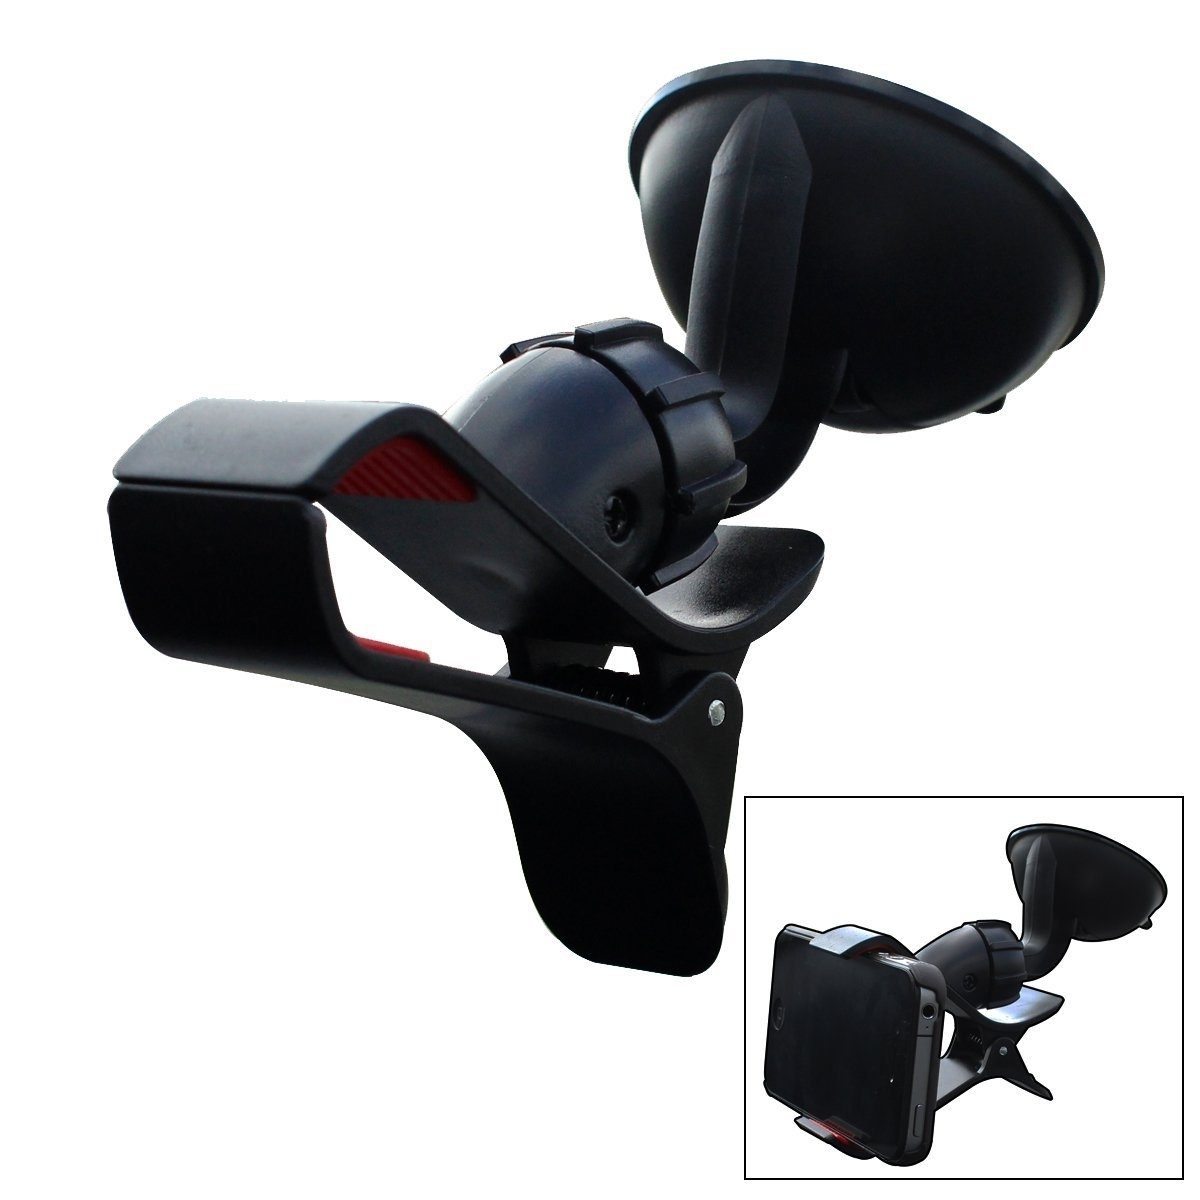 Furinno Easy Mount Suction Universal Car Phone Mount Holder, Black 589954d5c98fc41ef334087b